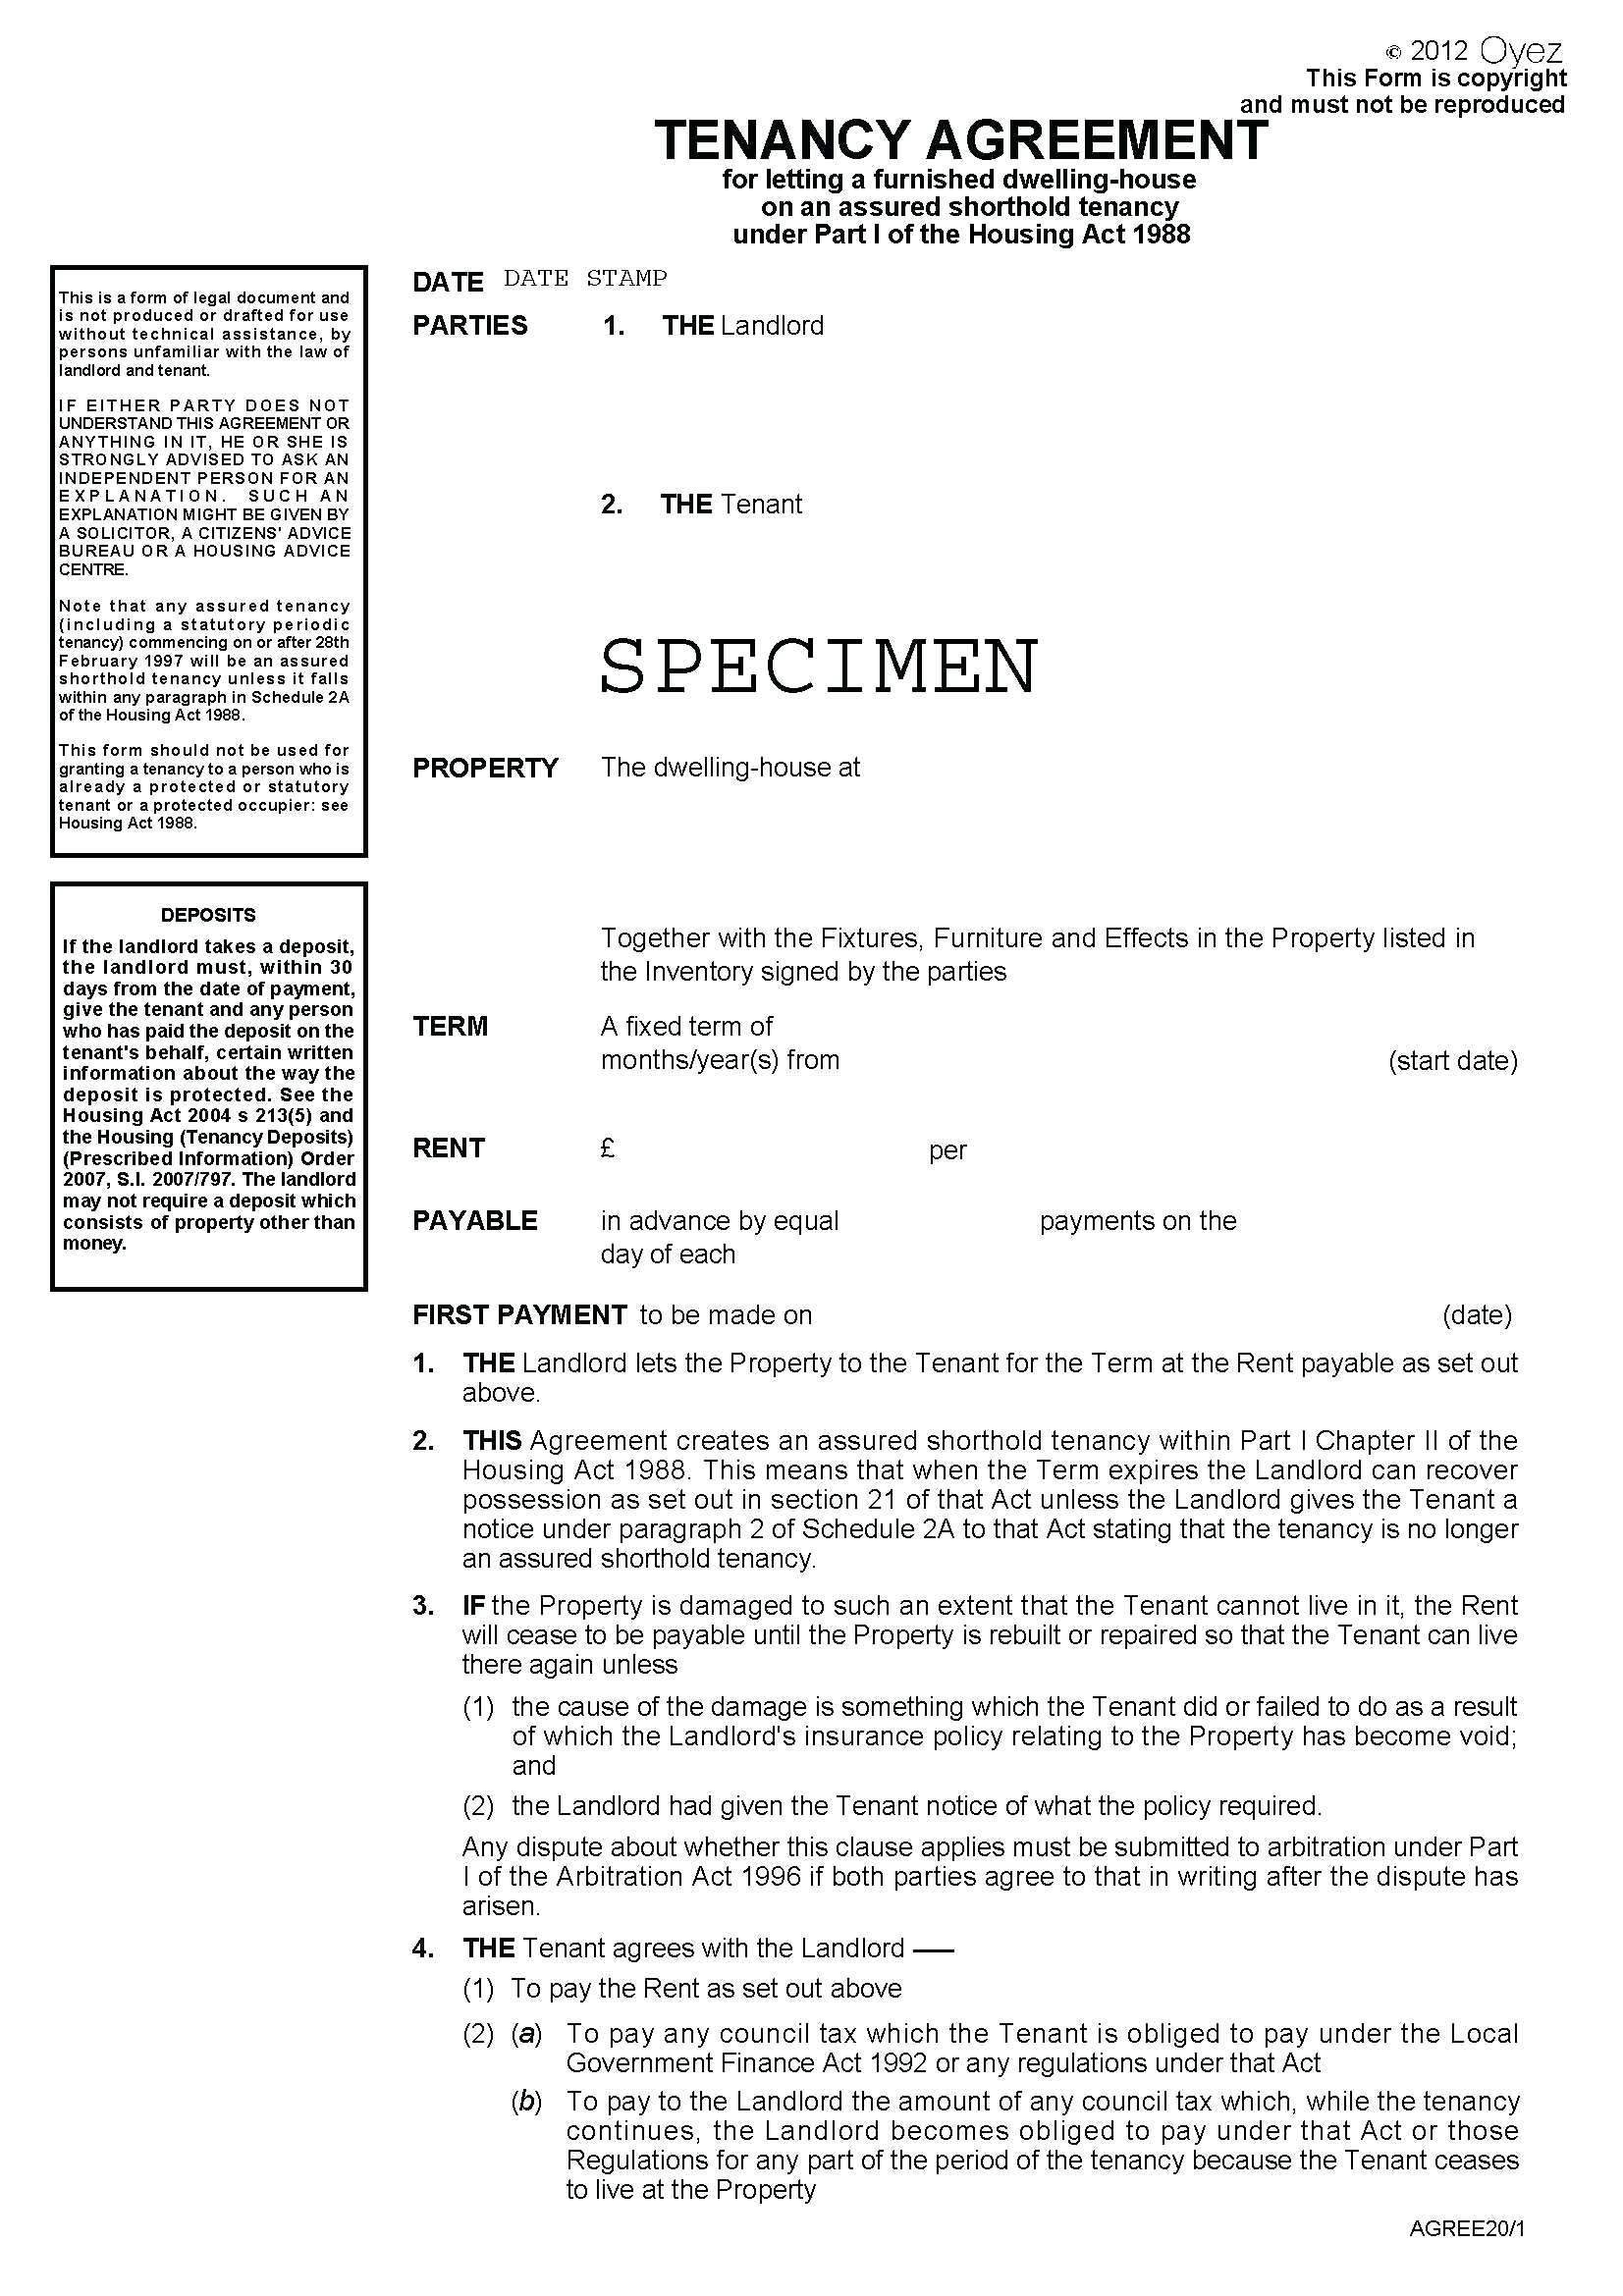 Tenancy Agreement Word Template